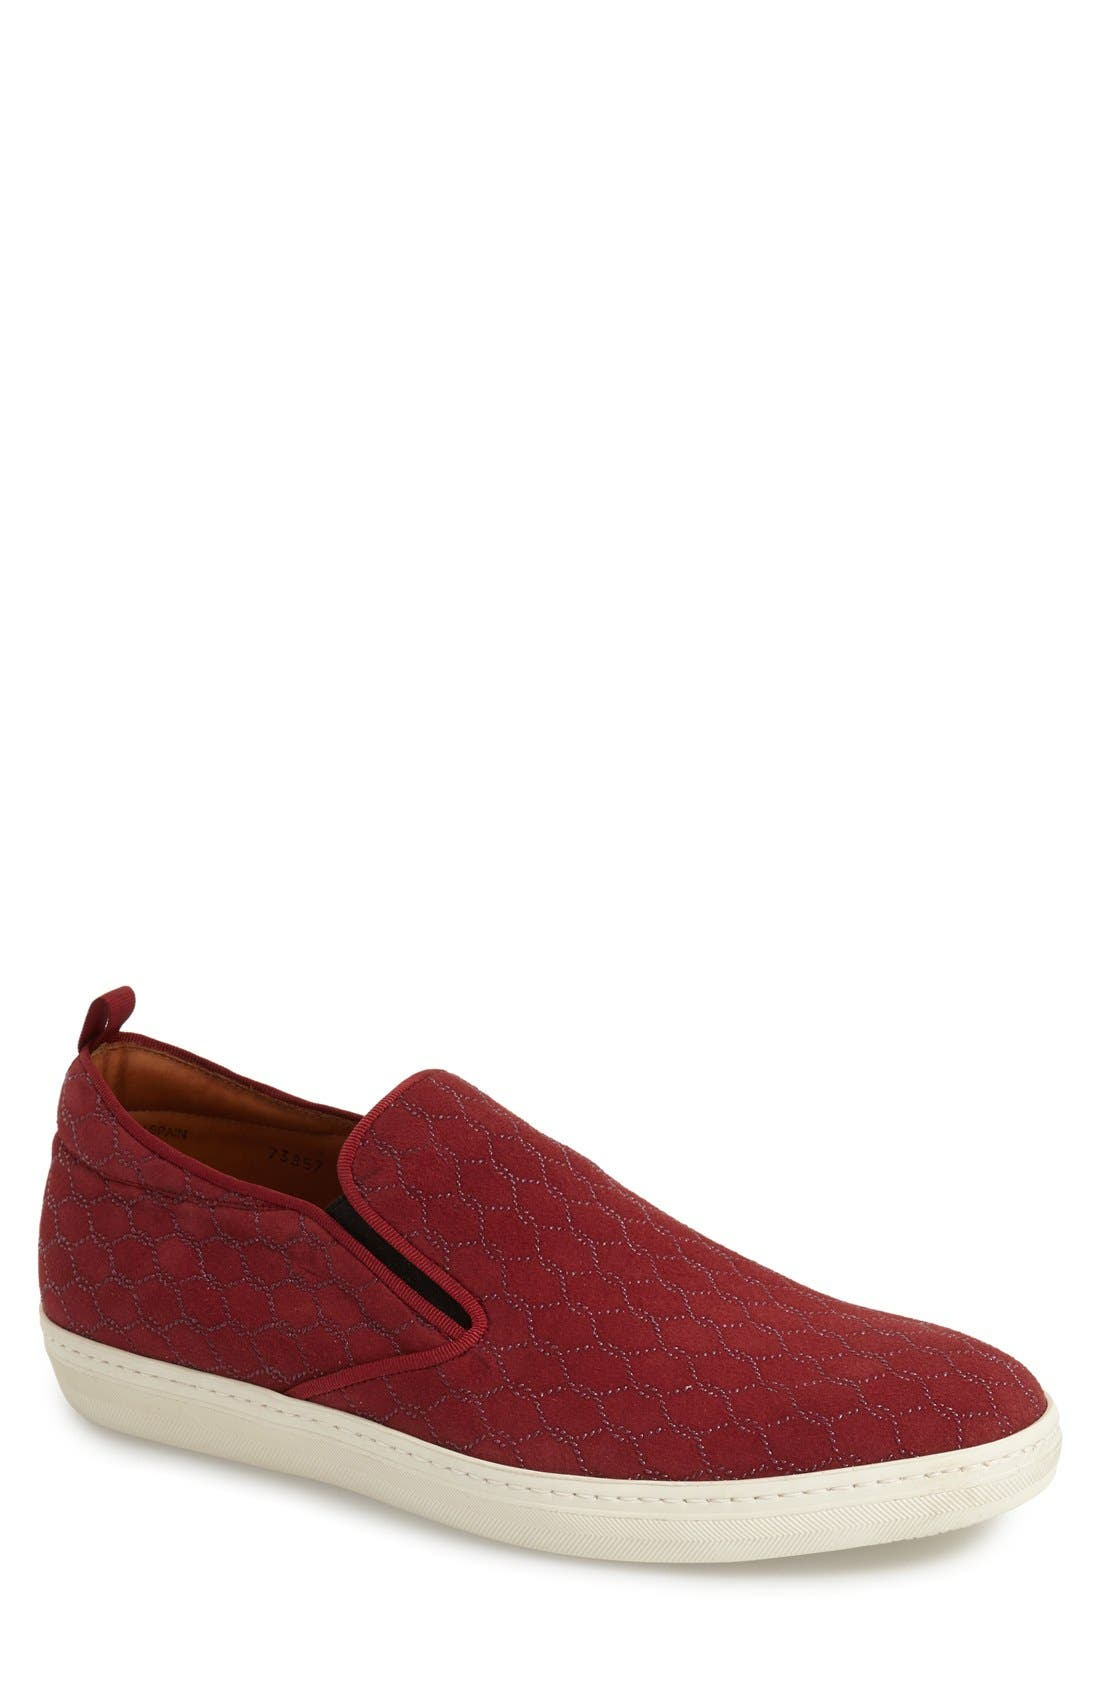 'Moneo' Slip-On,                             Main thumbnail 1, color,                             Burgundy Patterned Fabrc